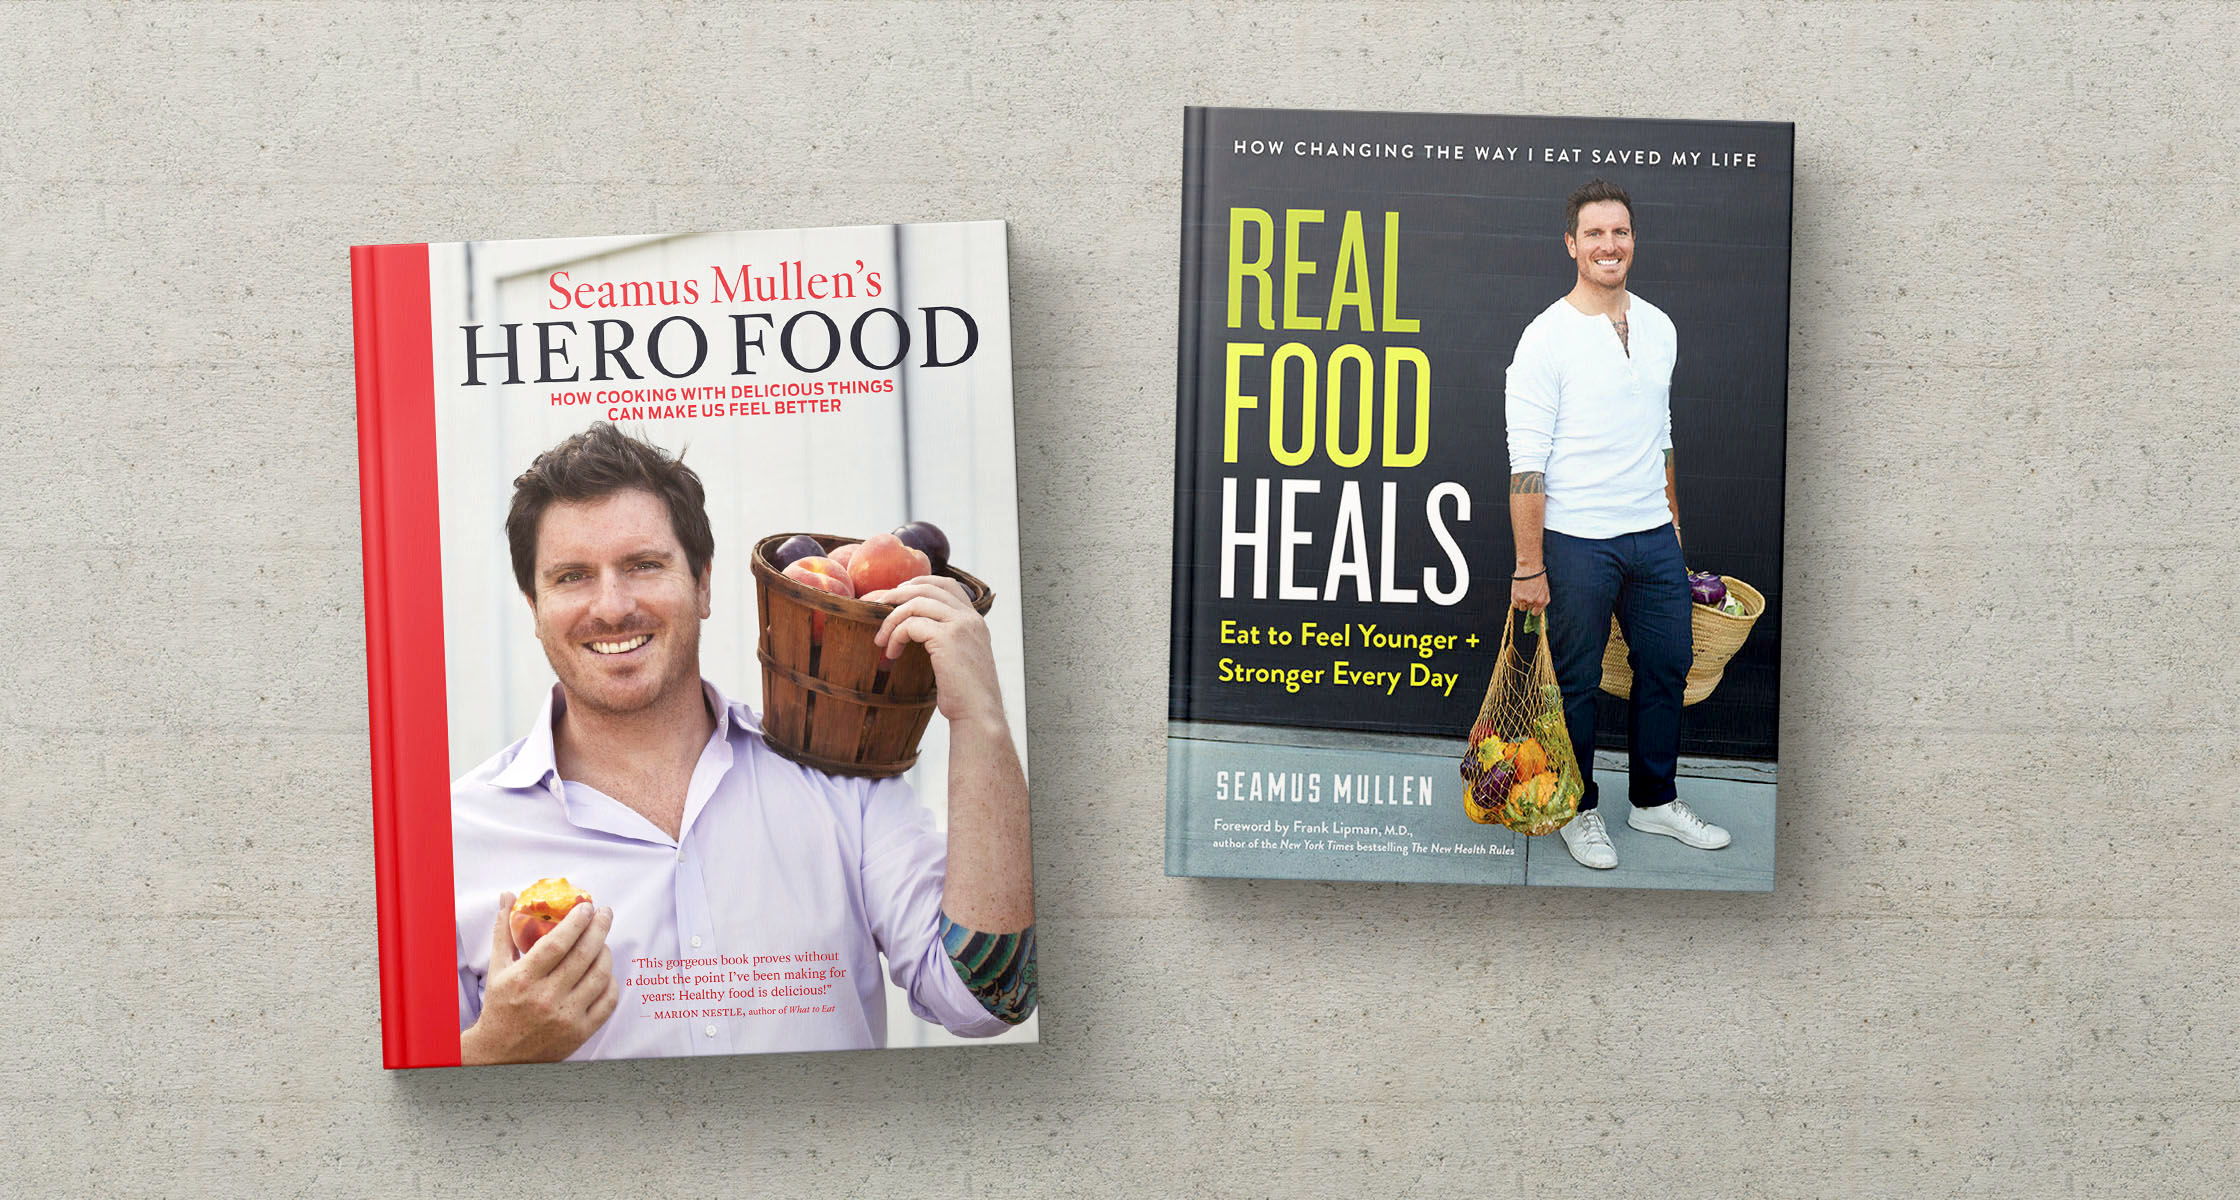 Seamus Mullen's books 'Hero Food' and 'Real Food Heals' for Paleo Diet Nutrition